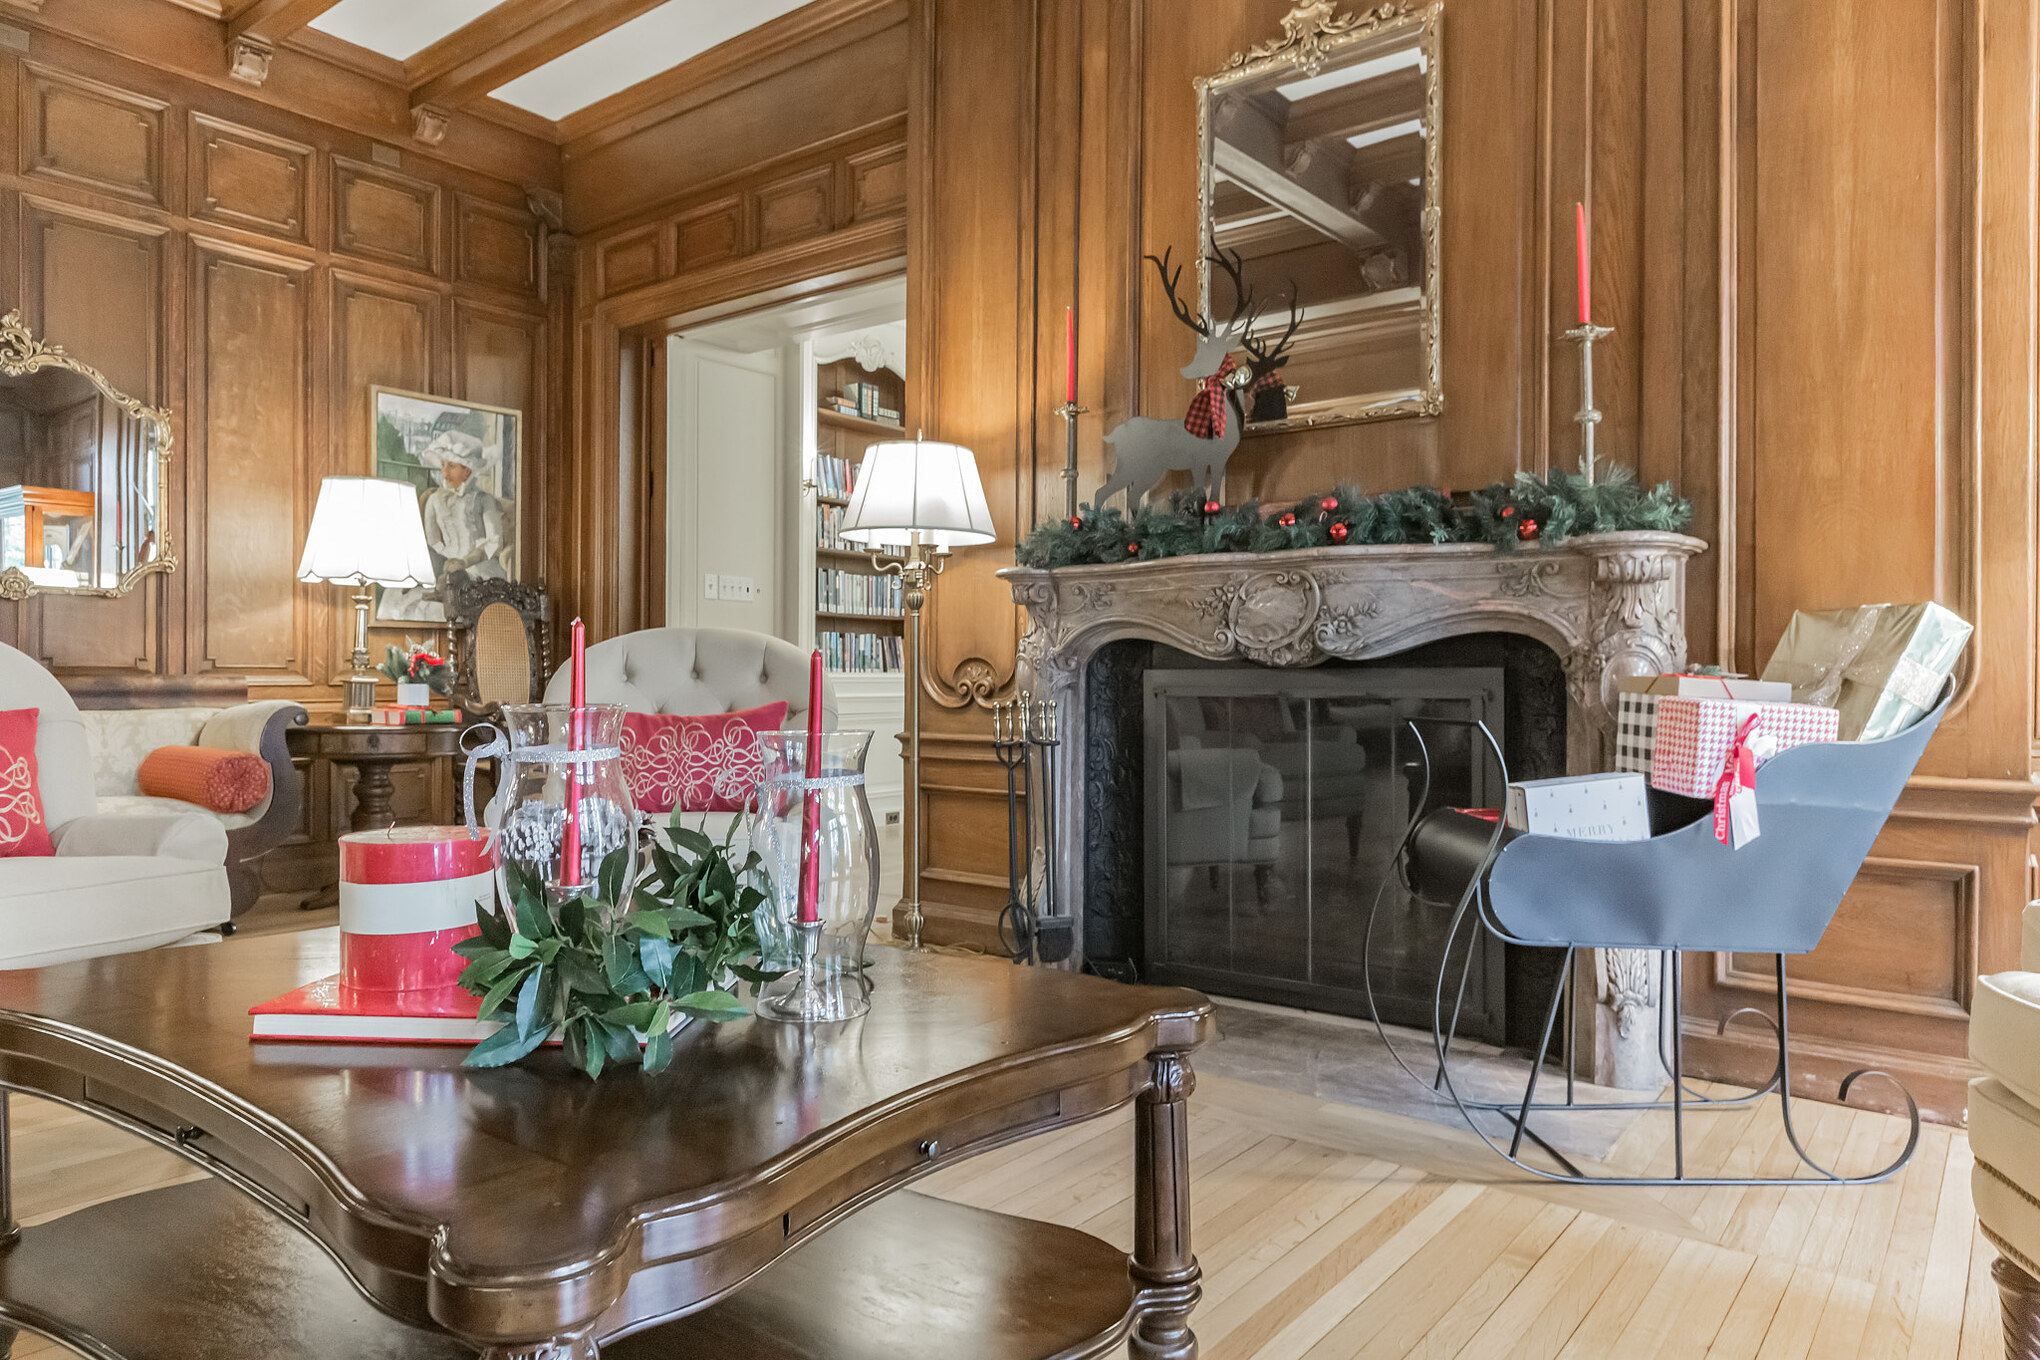 Holiday fireplace at The Mansion at Rosemont